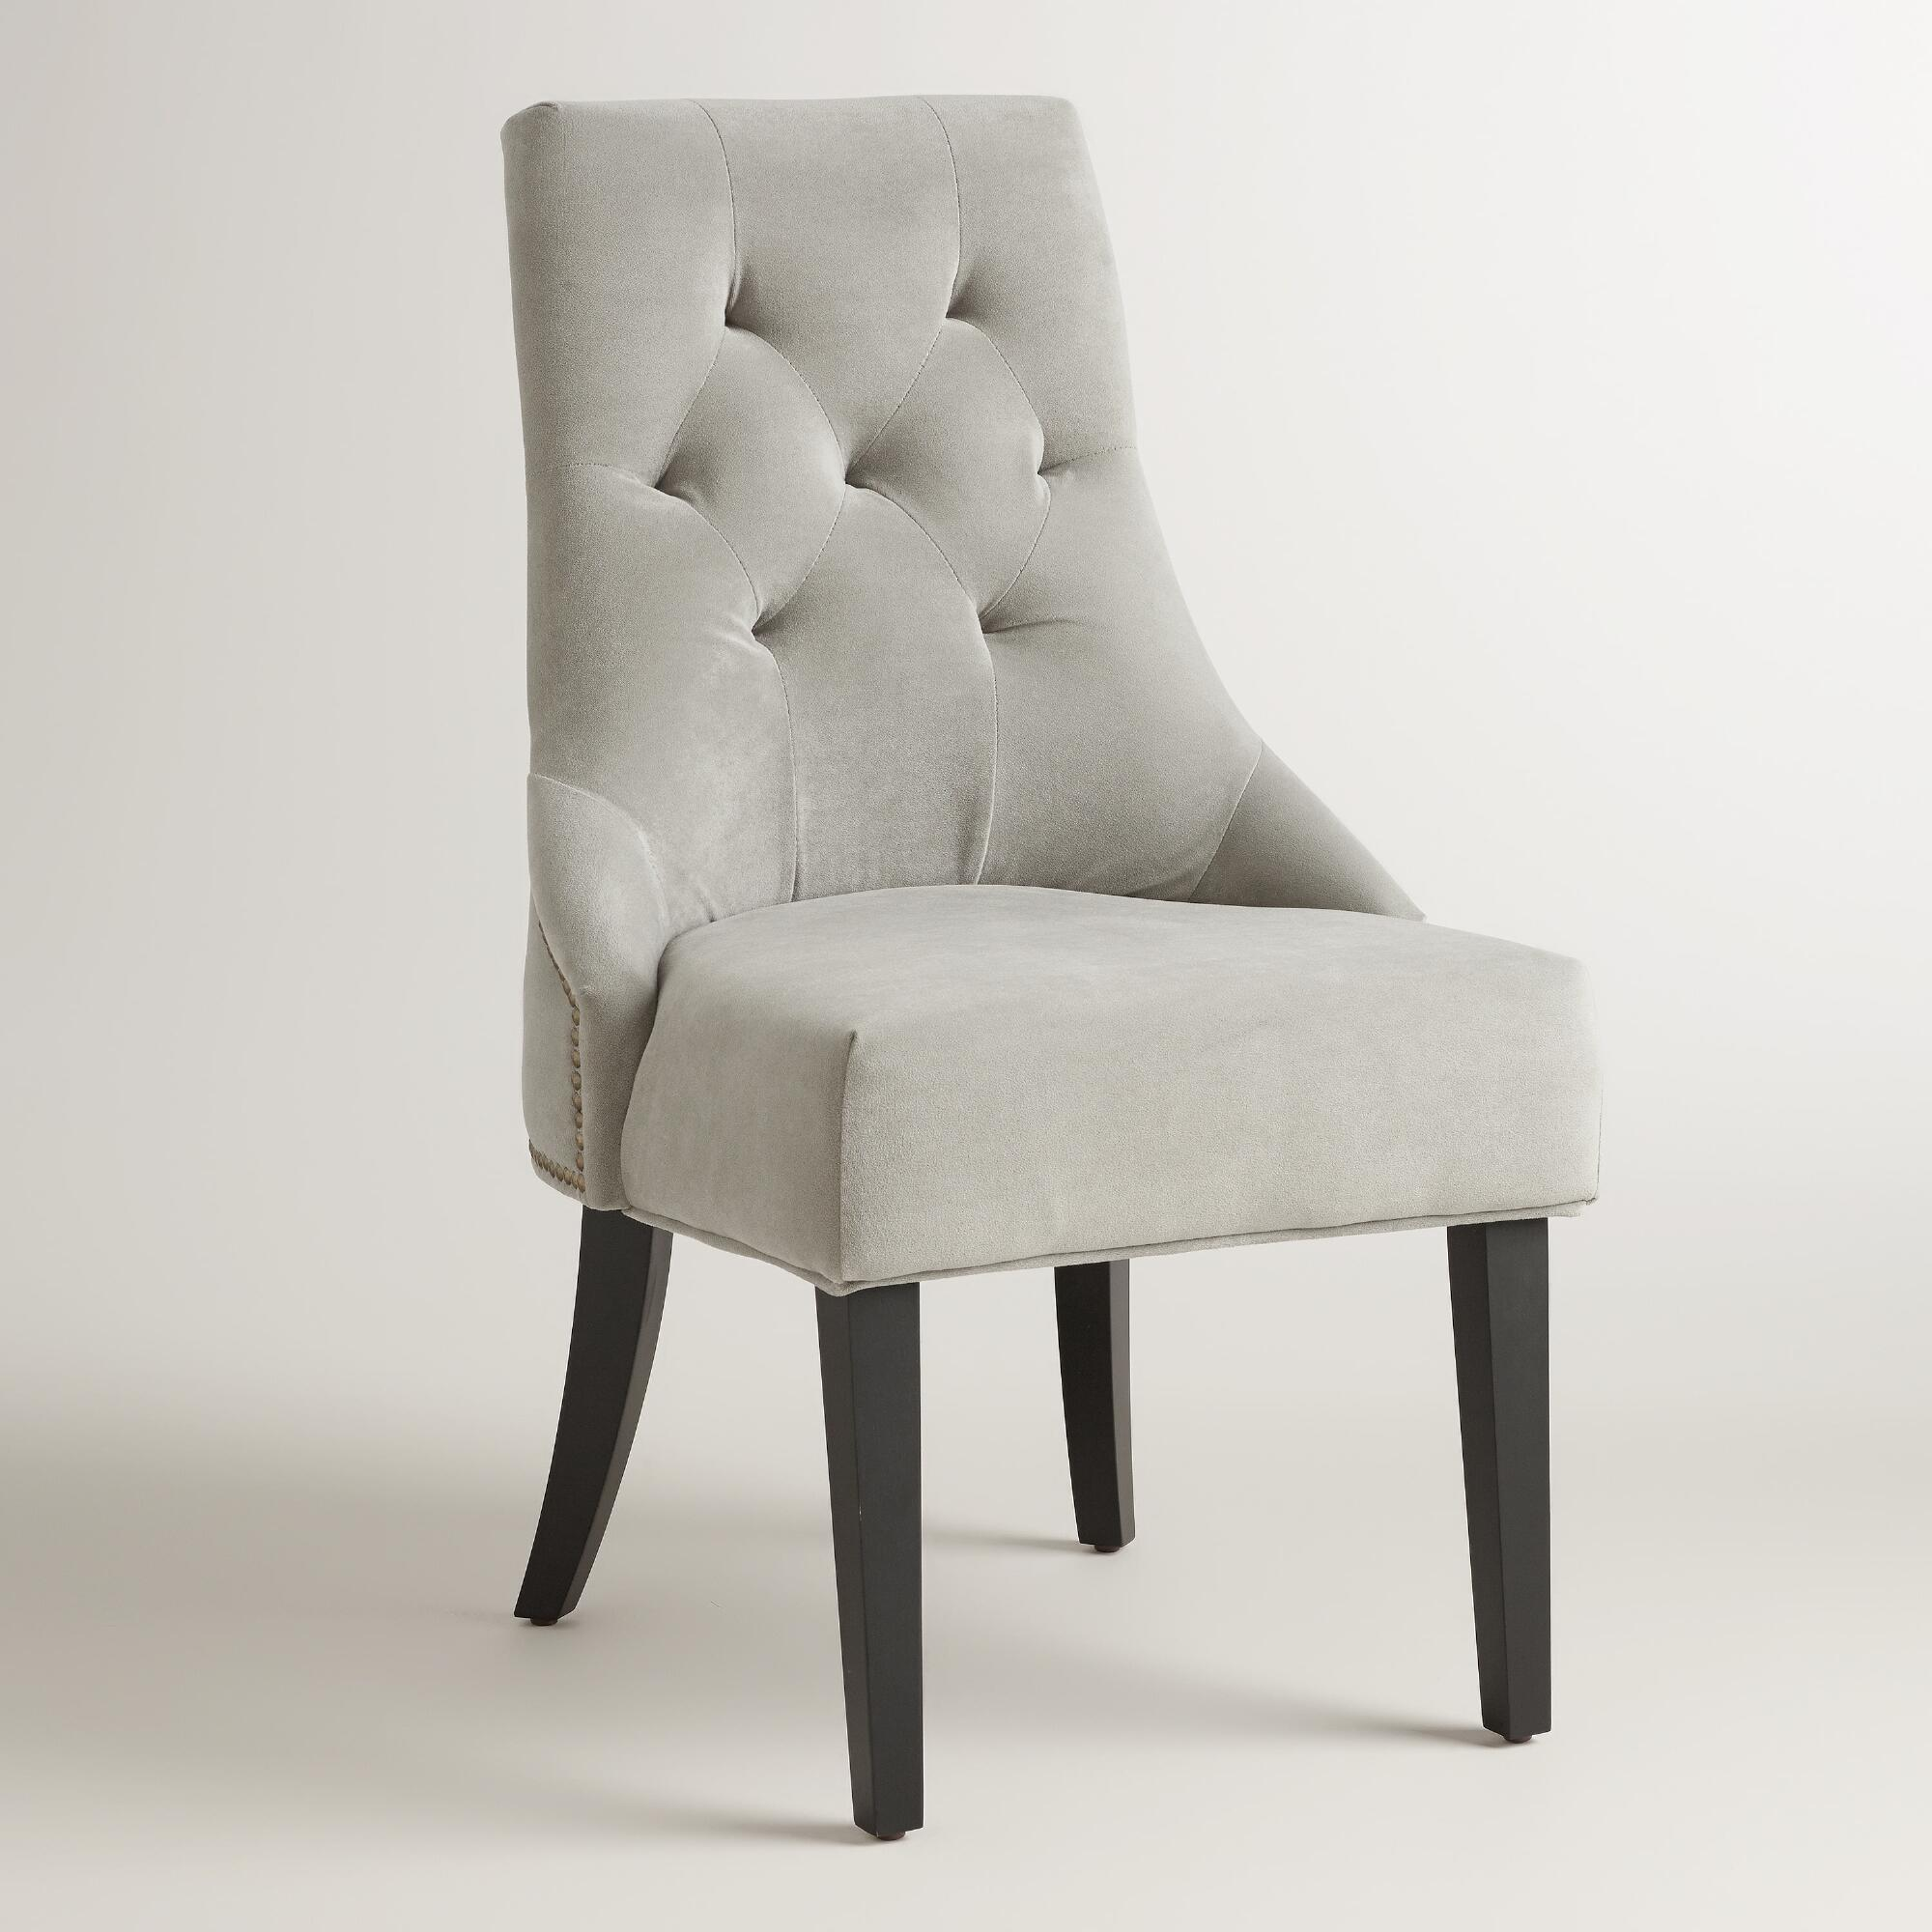 Tufted Chair | Tufted Accent Chairs | Tufted Leather Club Chair